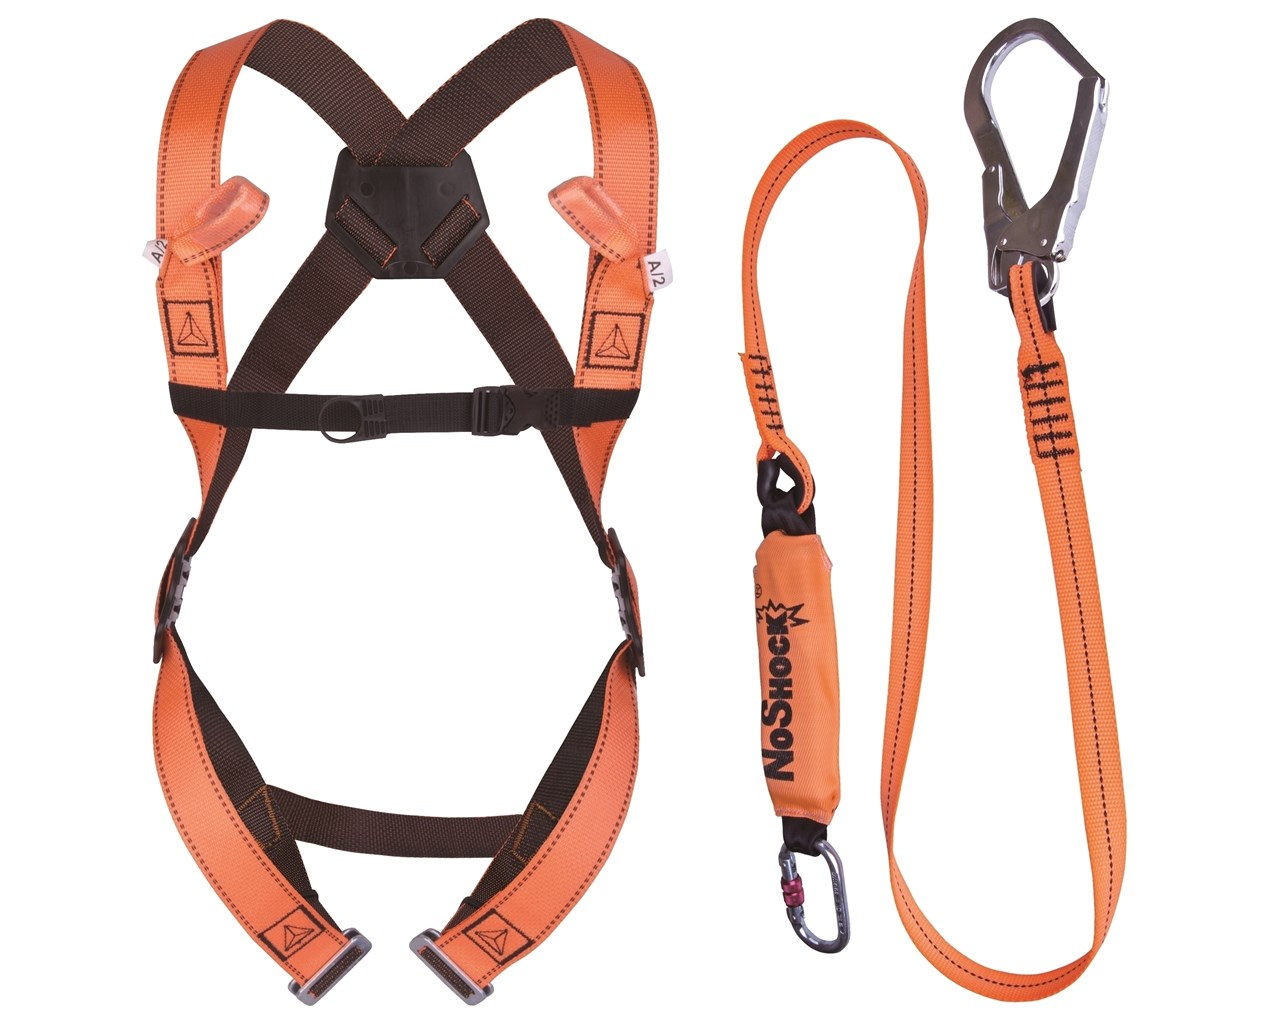 Forcefield Harness and Lanyard in a Bag 022-KIT-100